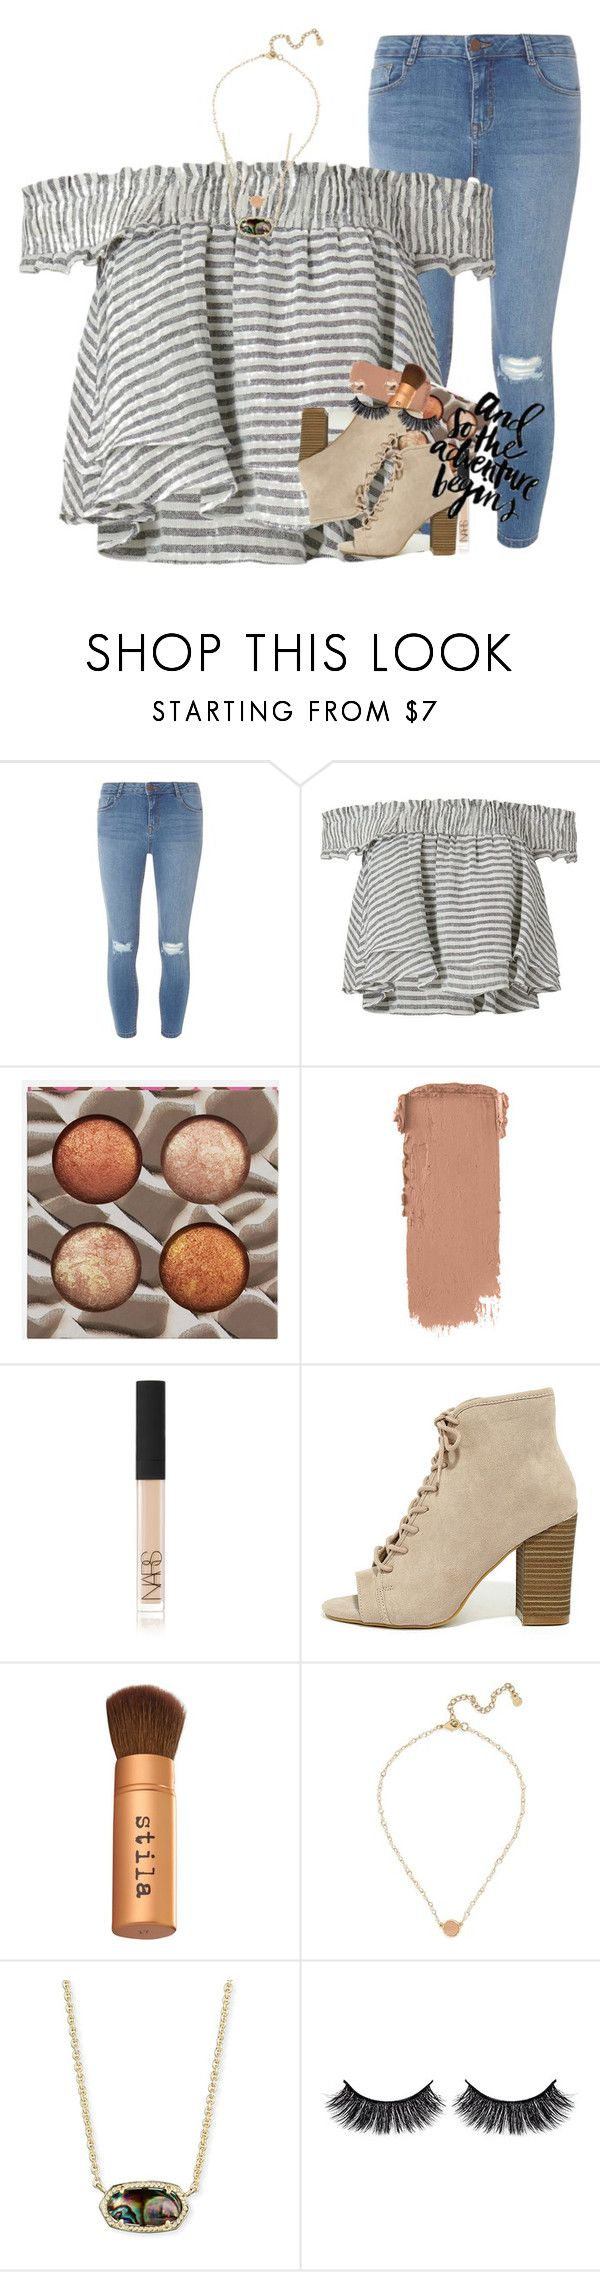 """gnash"" by ellaswiftie13 on Polyvore featuring Dorothy Perkins, Apiece Apart, BHCosmetics, NARS Cosmetics, Madden Girl, Stila, PAM, BaubleBar, Kendra Scott and Battington"